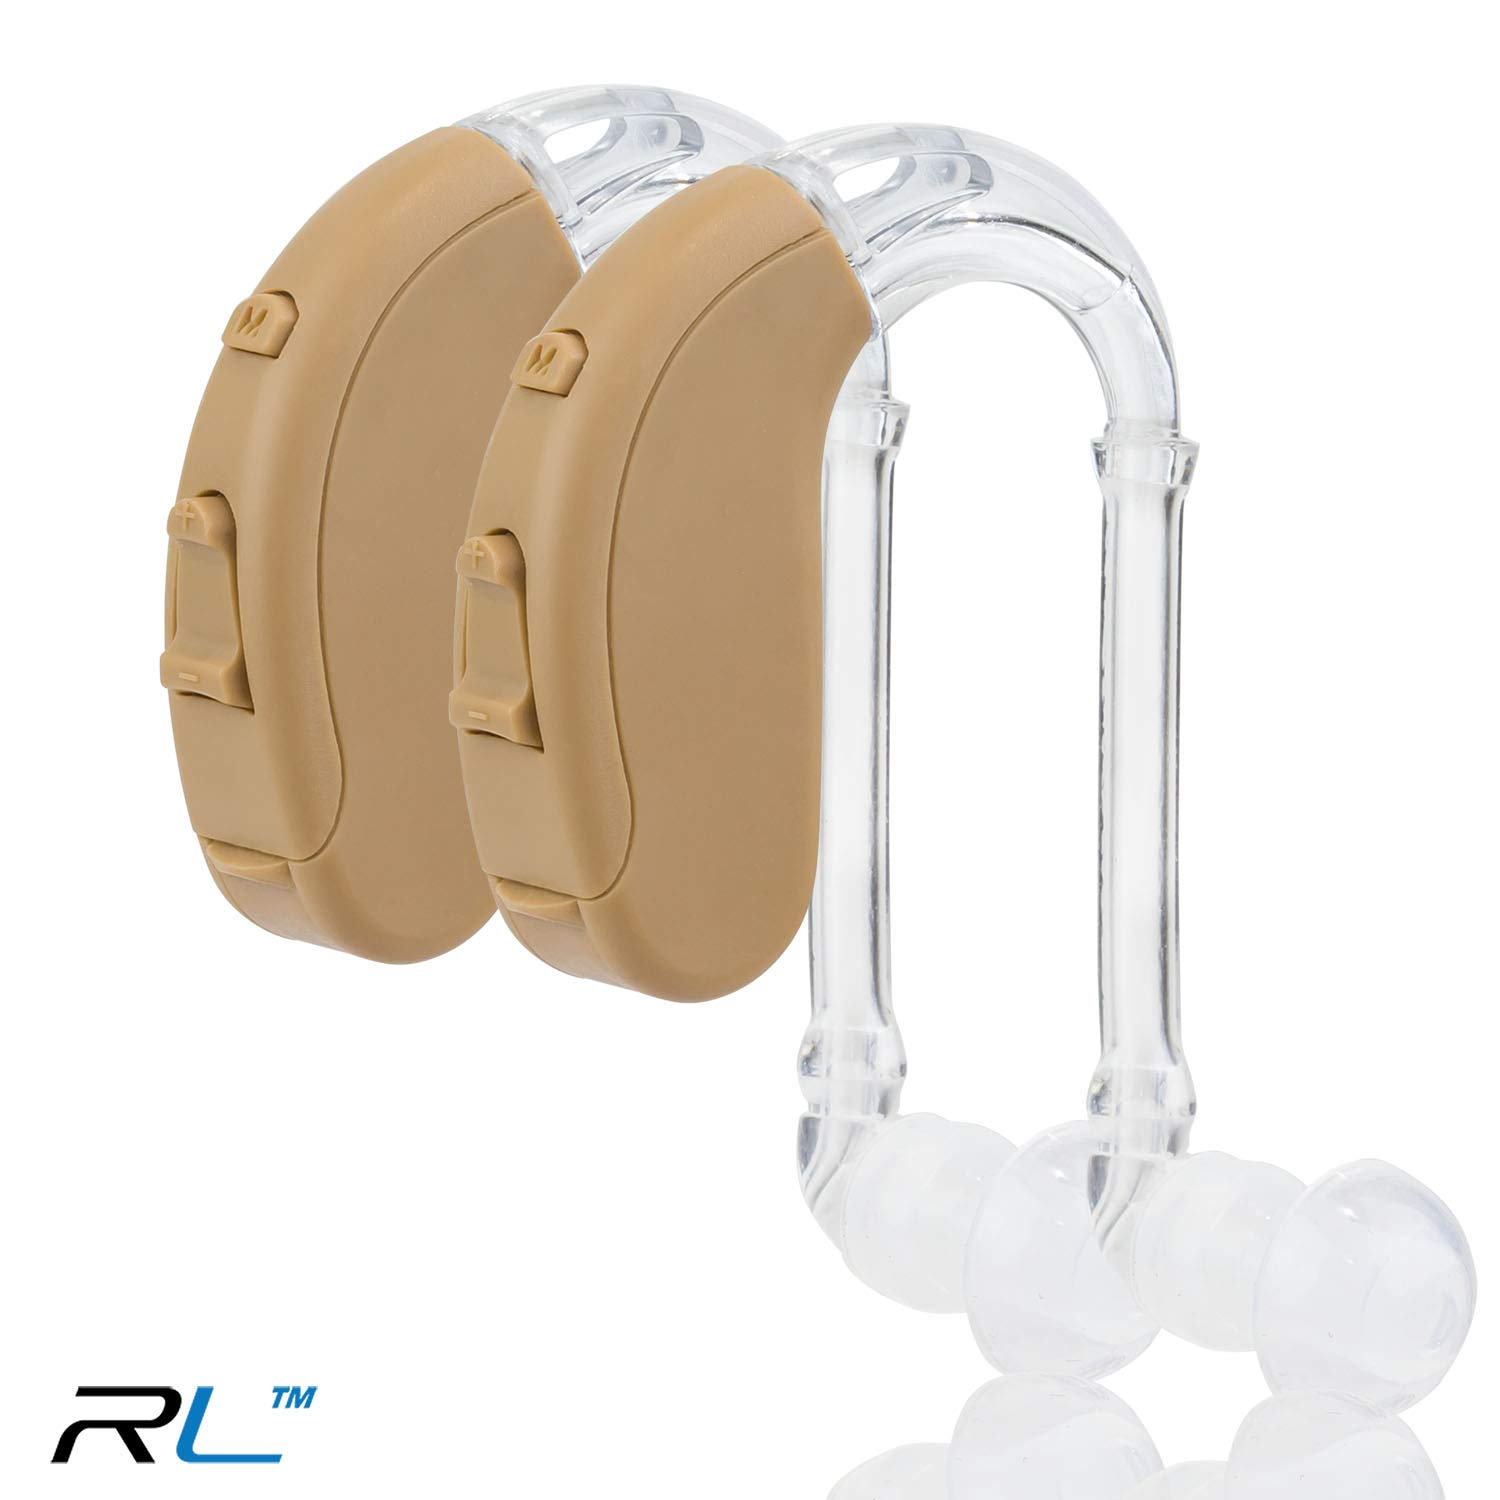 Digital Hearing Amplifiers - Sound Amplifier Device for Adults & Seniors - Small & Lightweight - 10 Days of Battery Life by R&L (Beige 2 Pack)